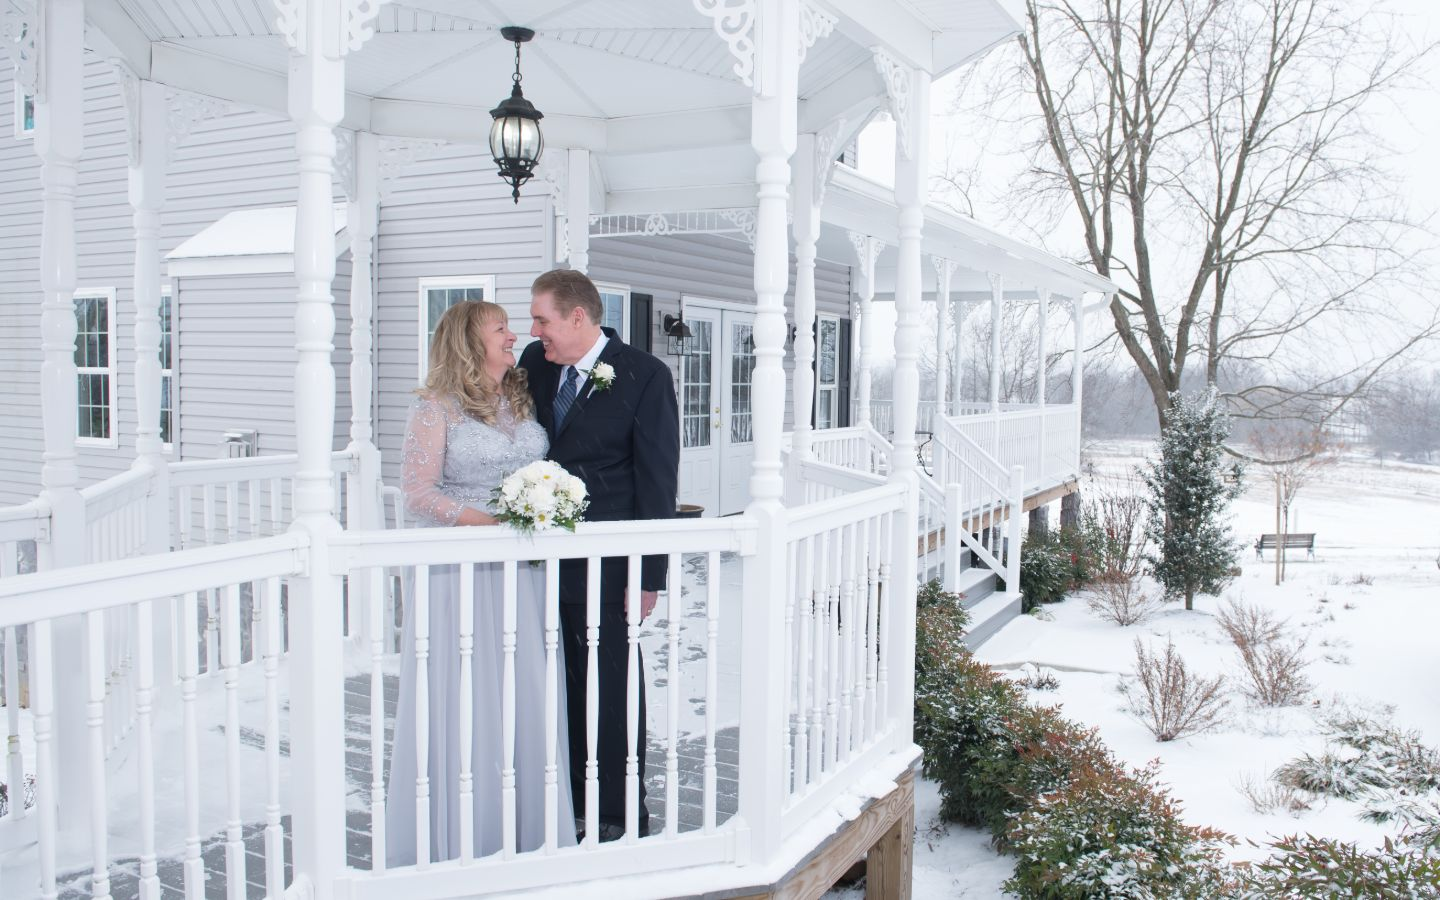 Winter Elopement in PA Gazebo